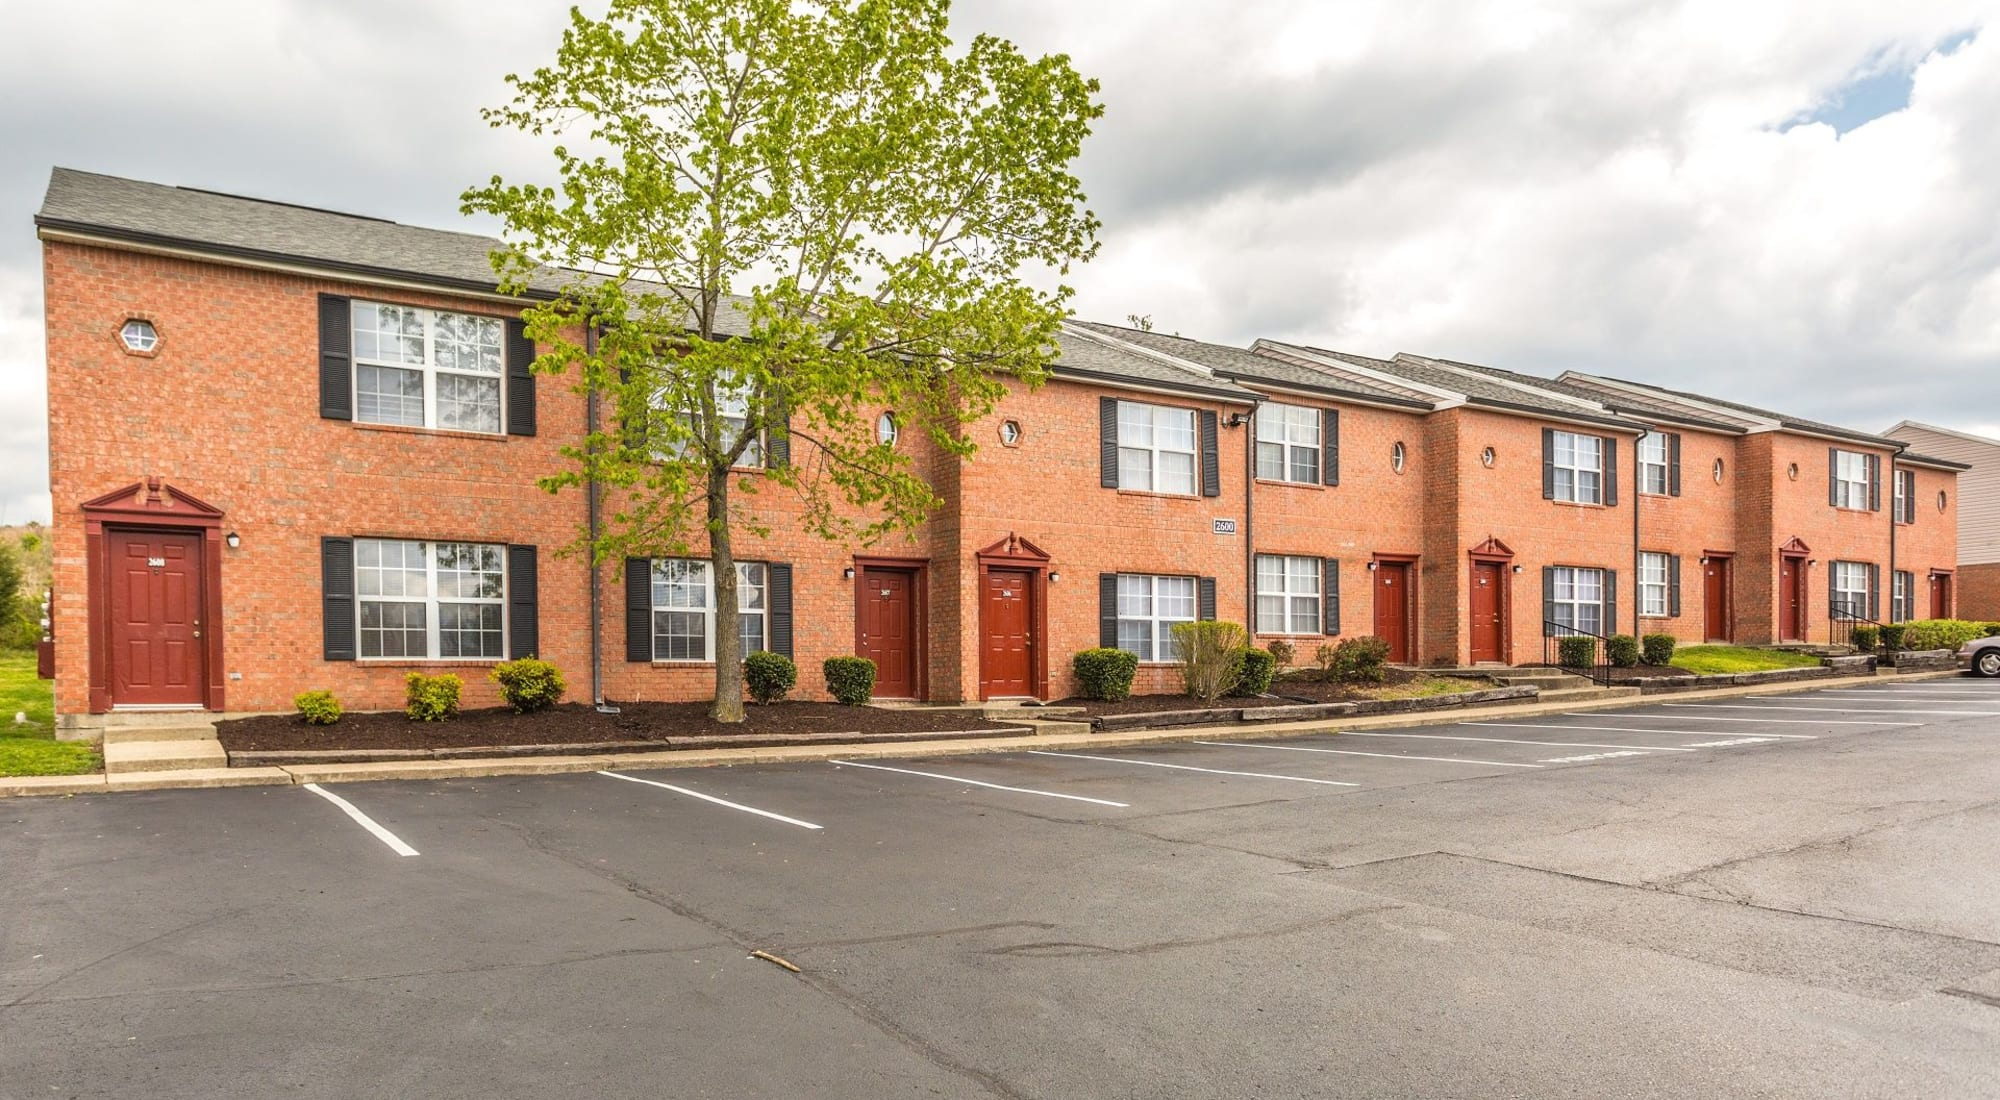 Resident information at Cypress Creek Townhomes in Goodlettsville, Tennessee